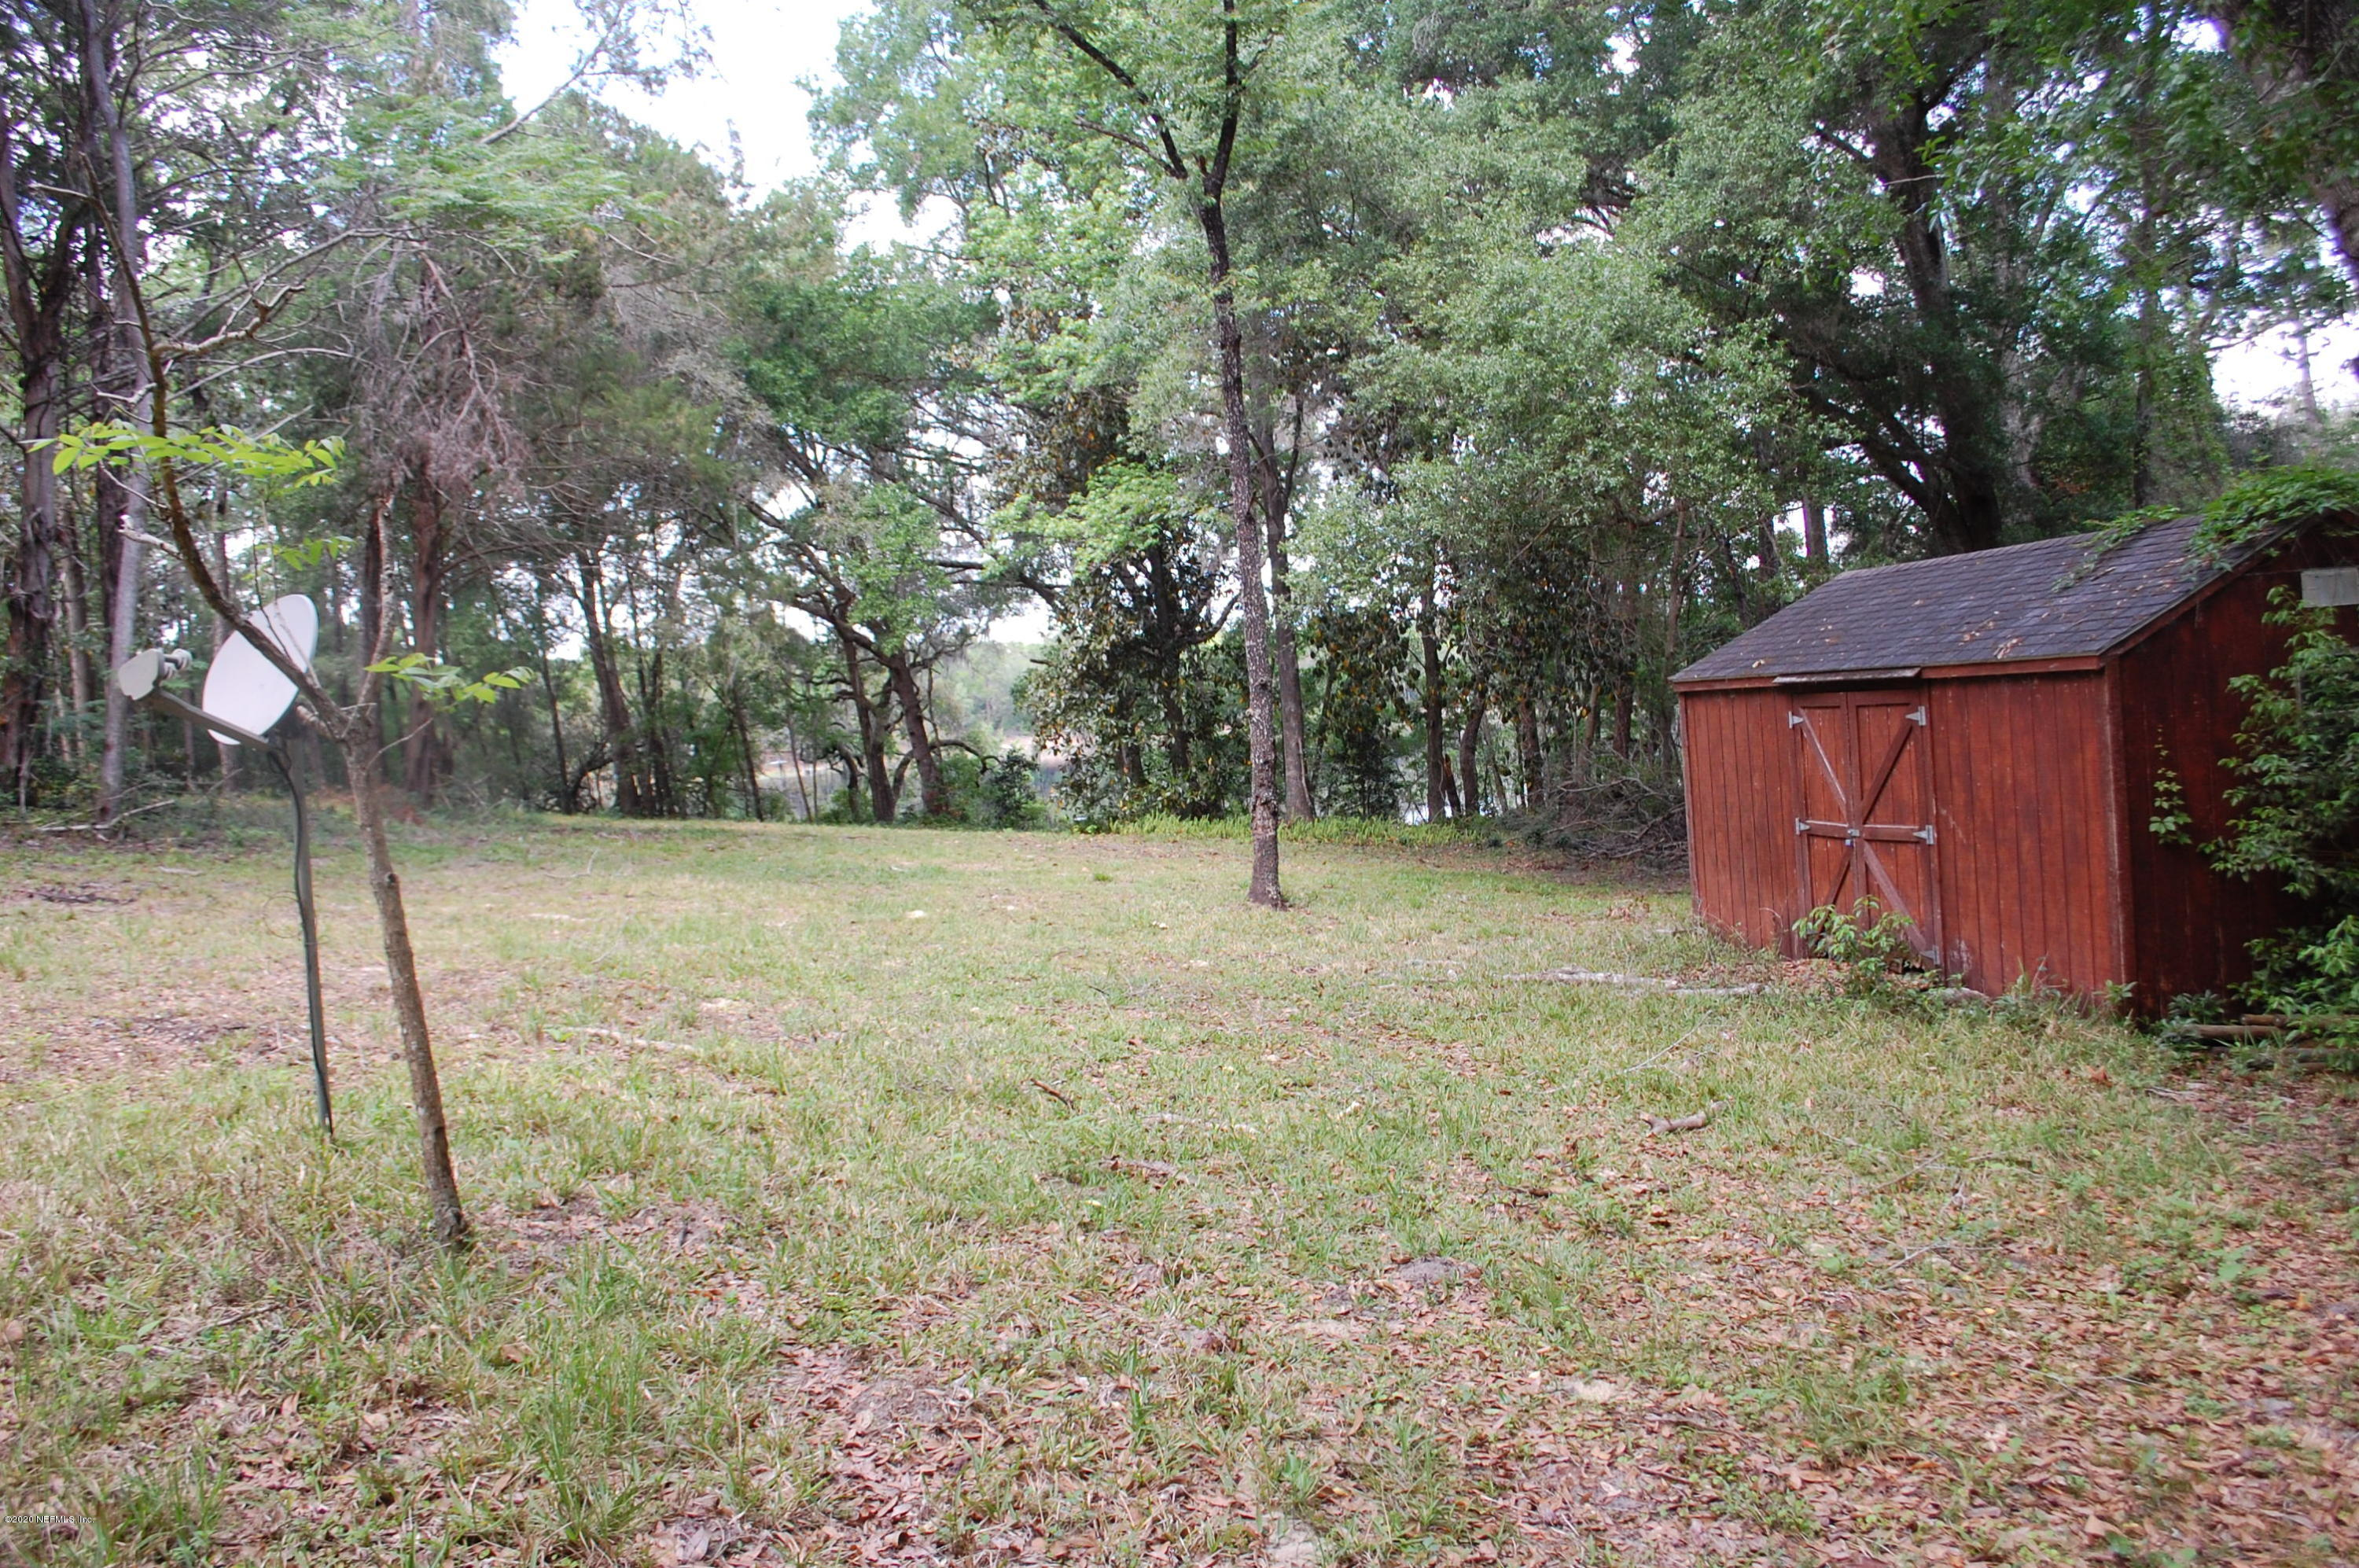 0 LILY LAKE, KEYSTONE HEIGHTS, FLORIDA 32656, ,Vacant land,For sale,LILY LAKE,1047917